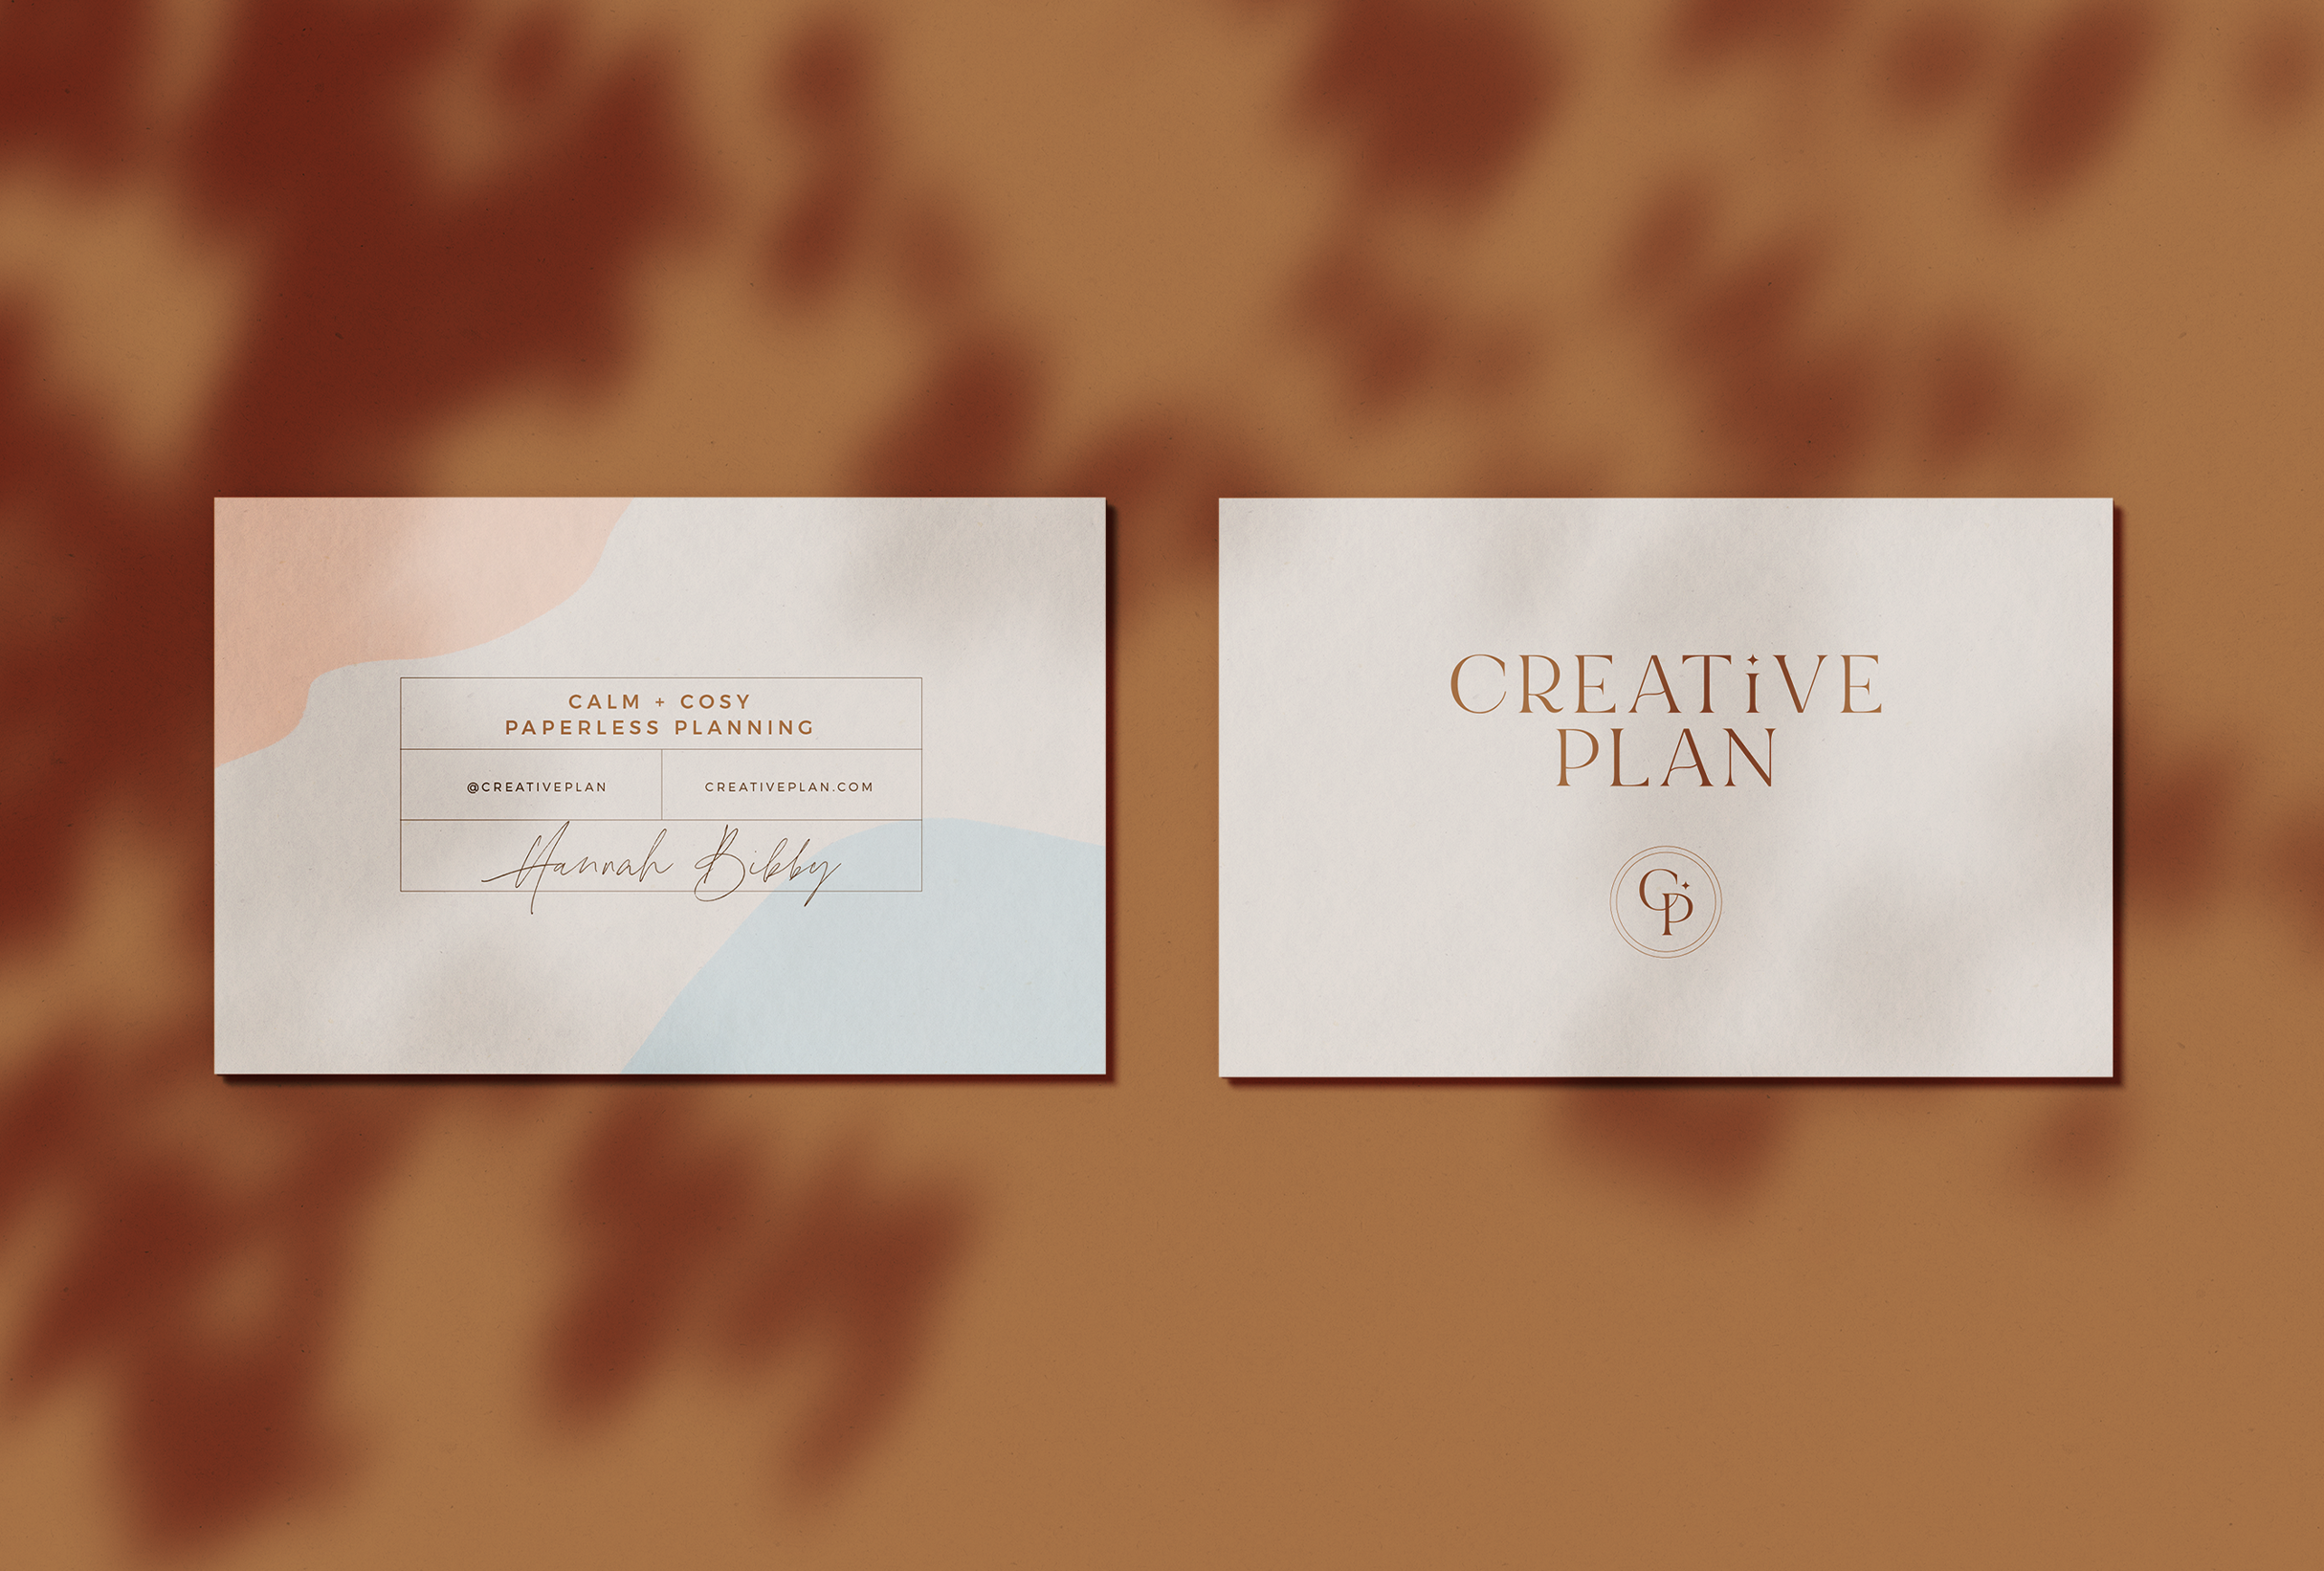 Business cards for Creative Plan, providing paperless planning products with an analogue feel - designed by Wiltshire-based graphic designer, Kaye Huett